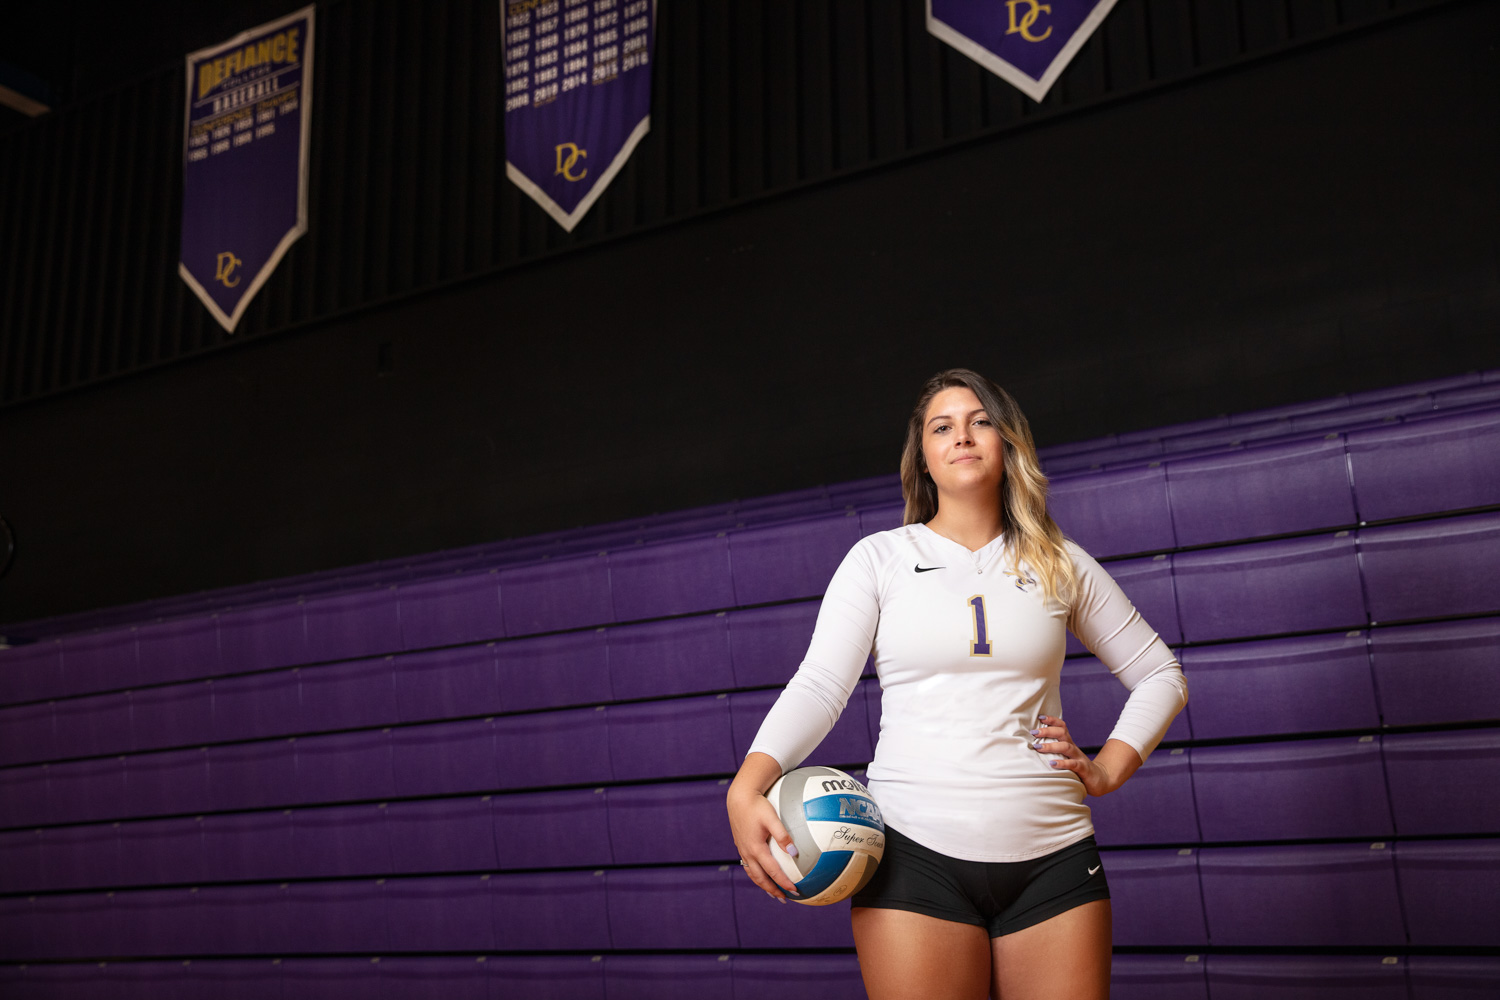 Defiance College Volleyball Player